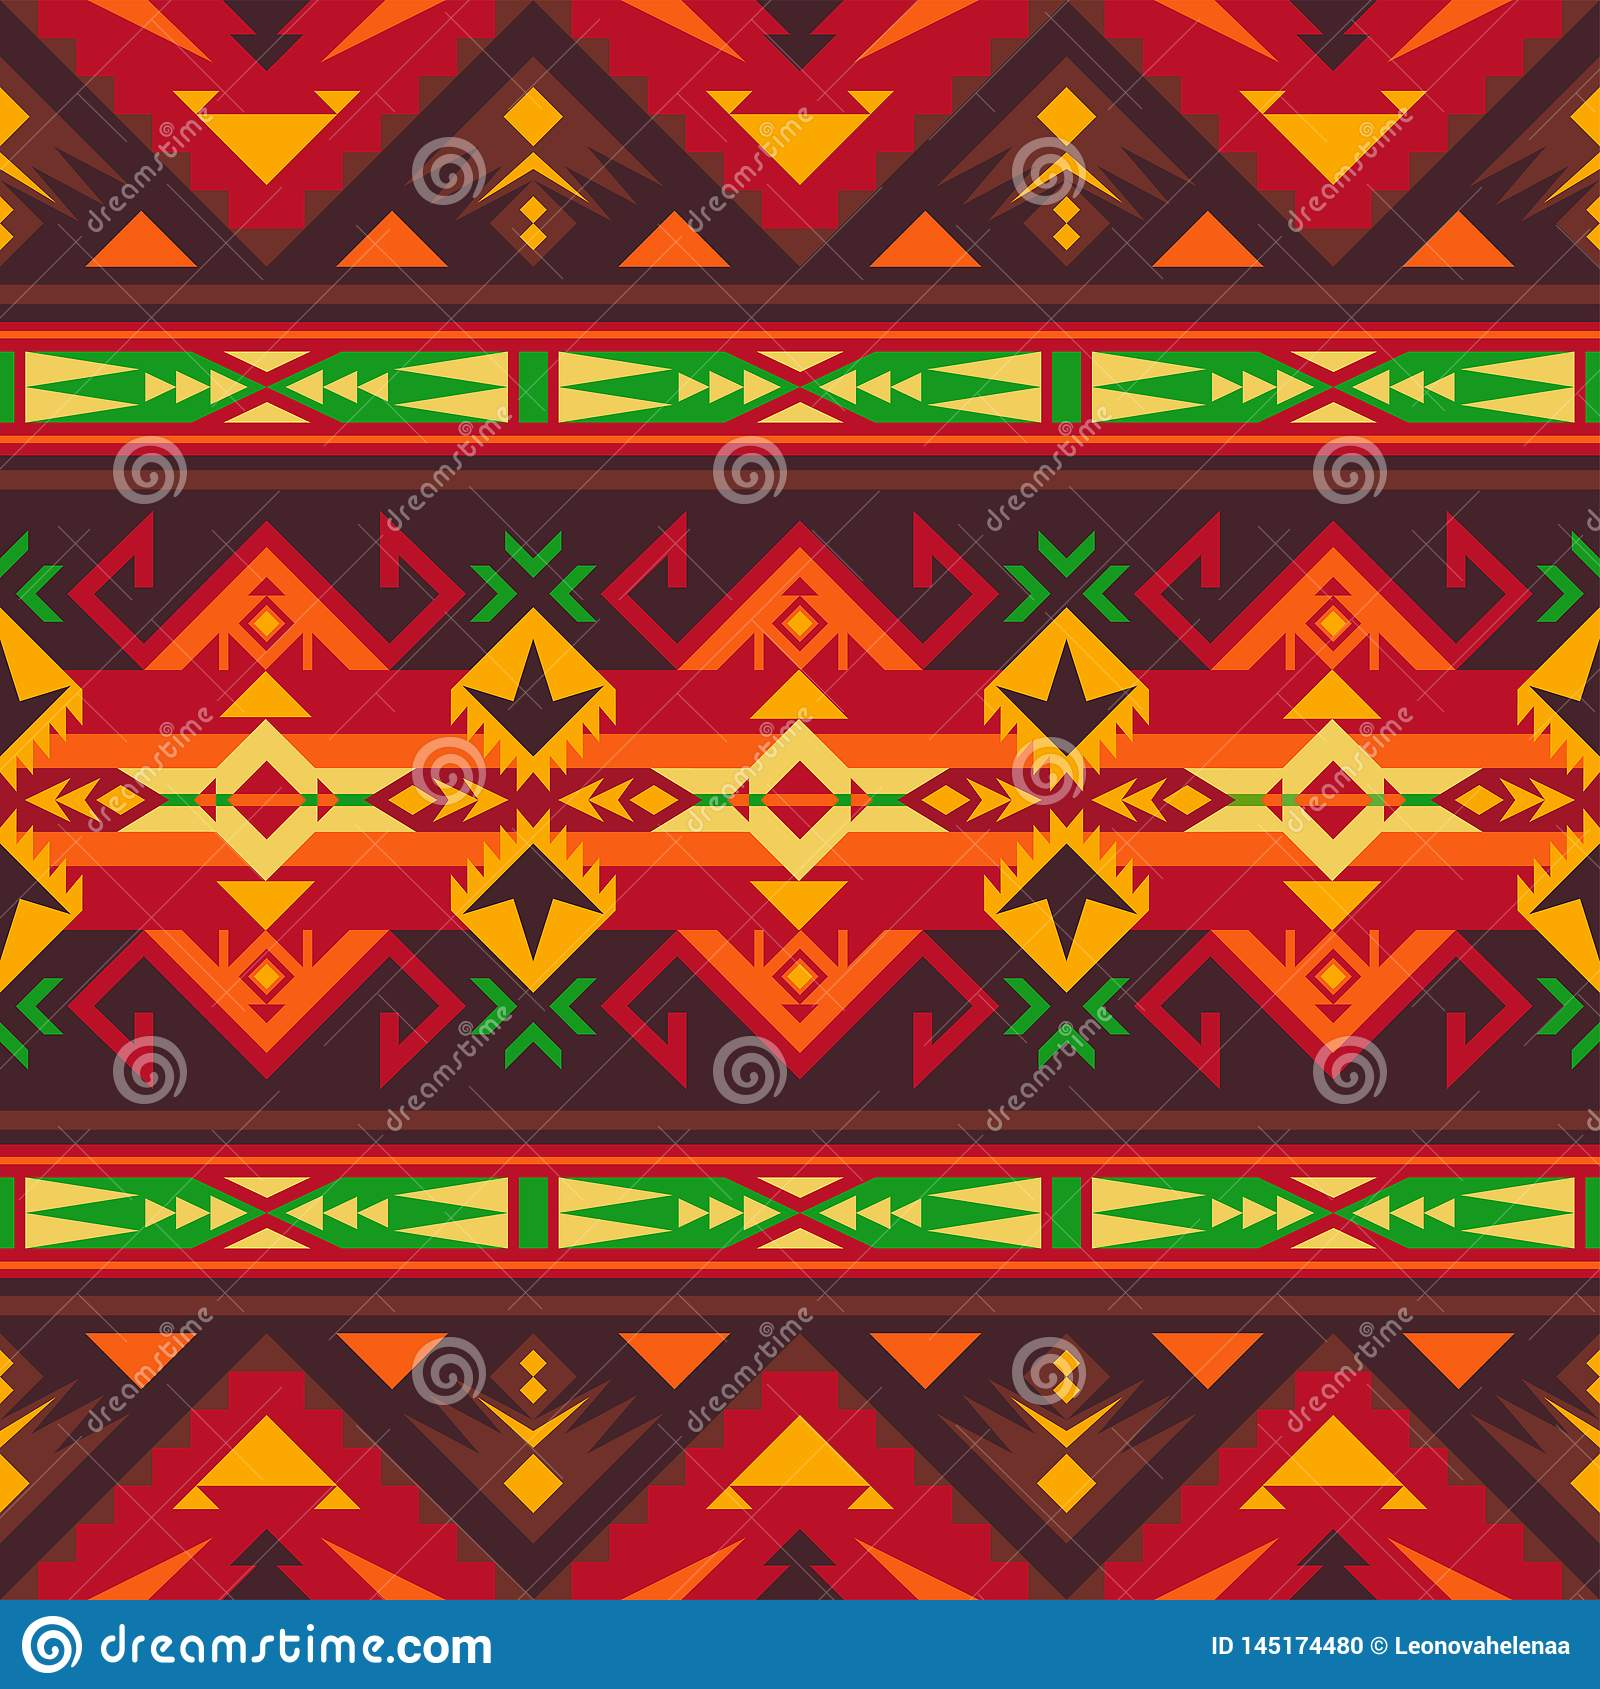 photo about Native American Designs Printable referred to as Indigenous Southwest American, Indian, Aztec, Navajo Seamless